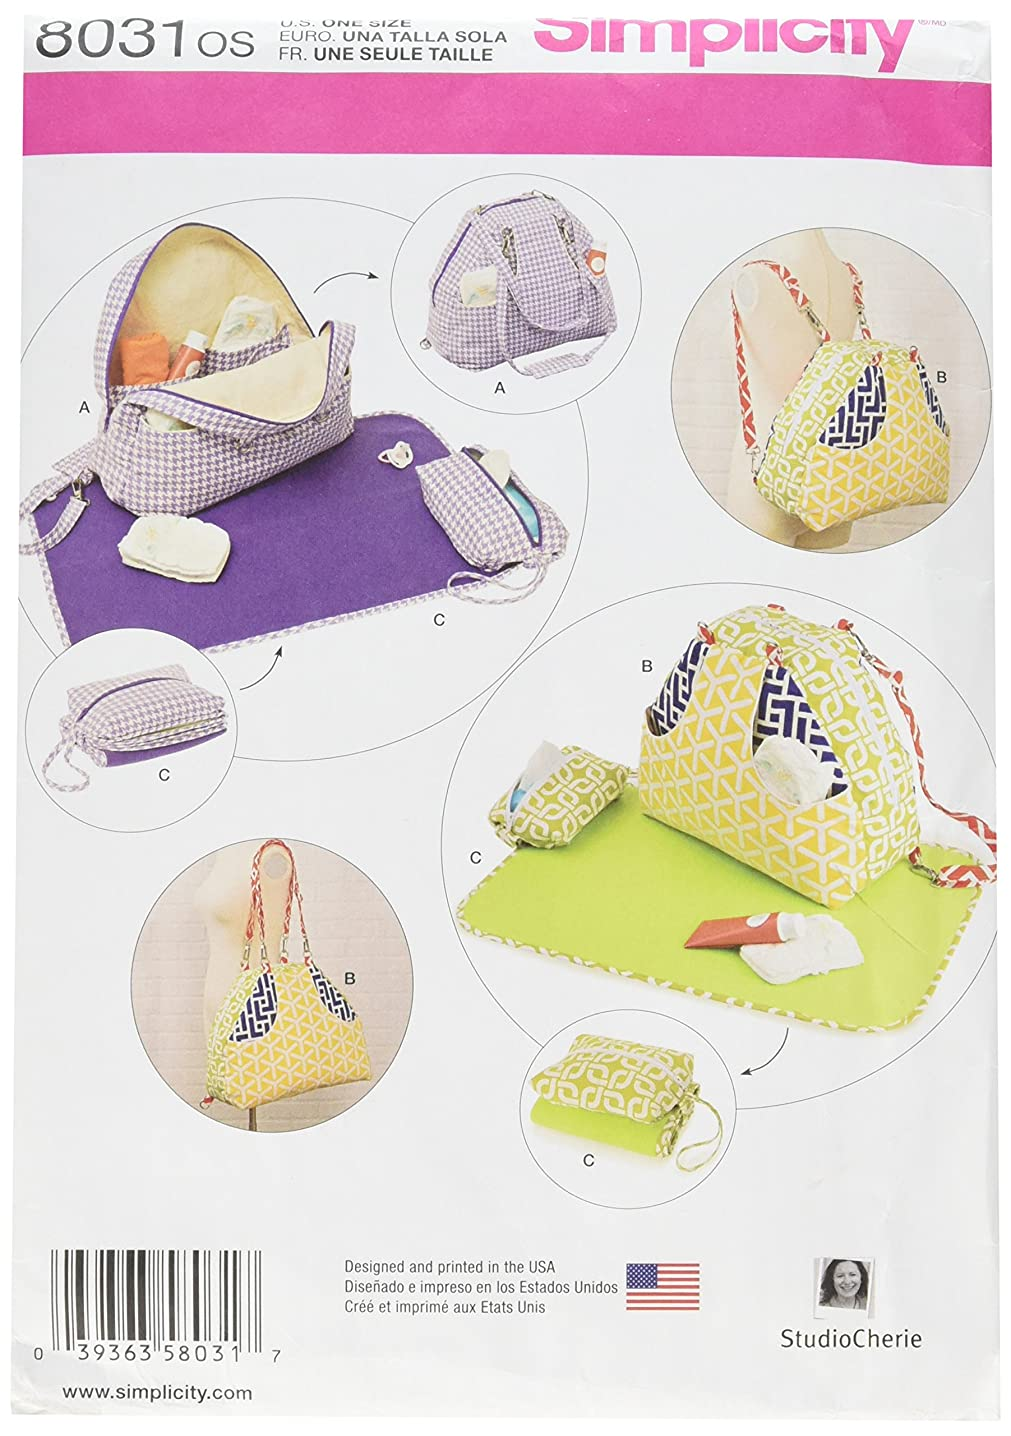 Simplicity Patterns Convertible Diaper Bags Changing Pads Size: Os (One Size), 8031